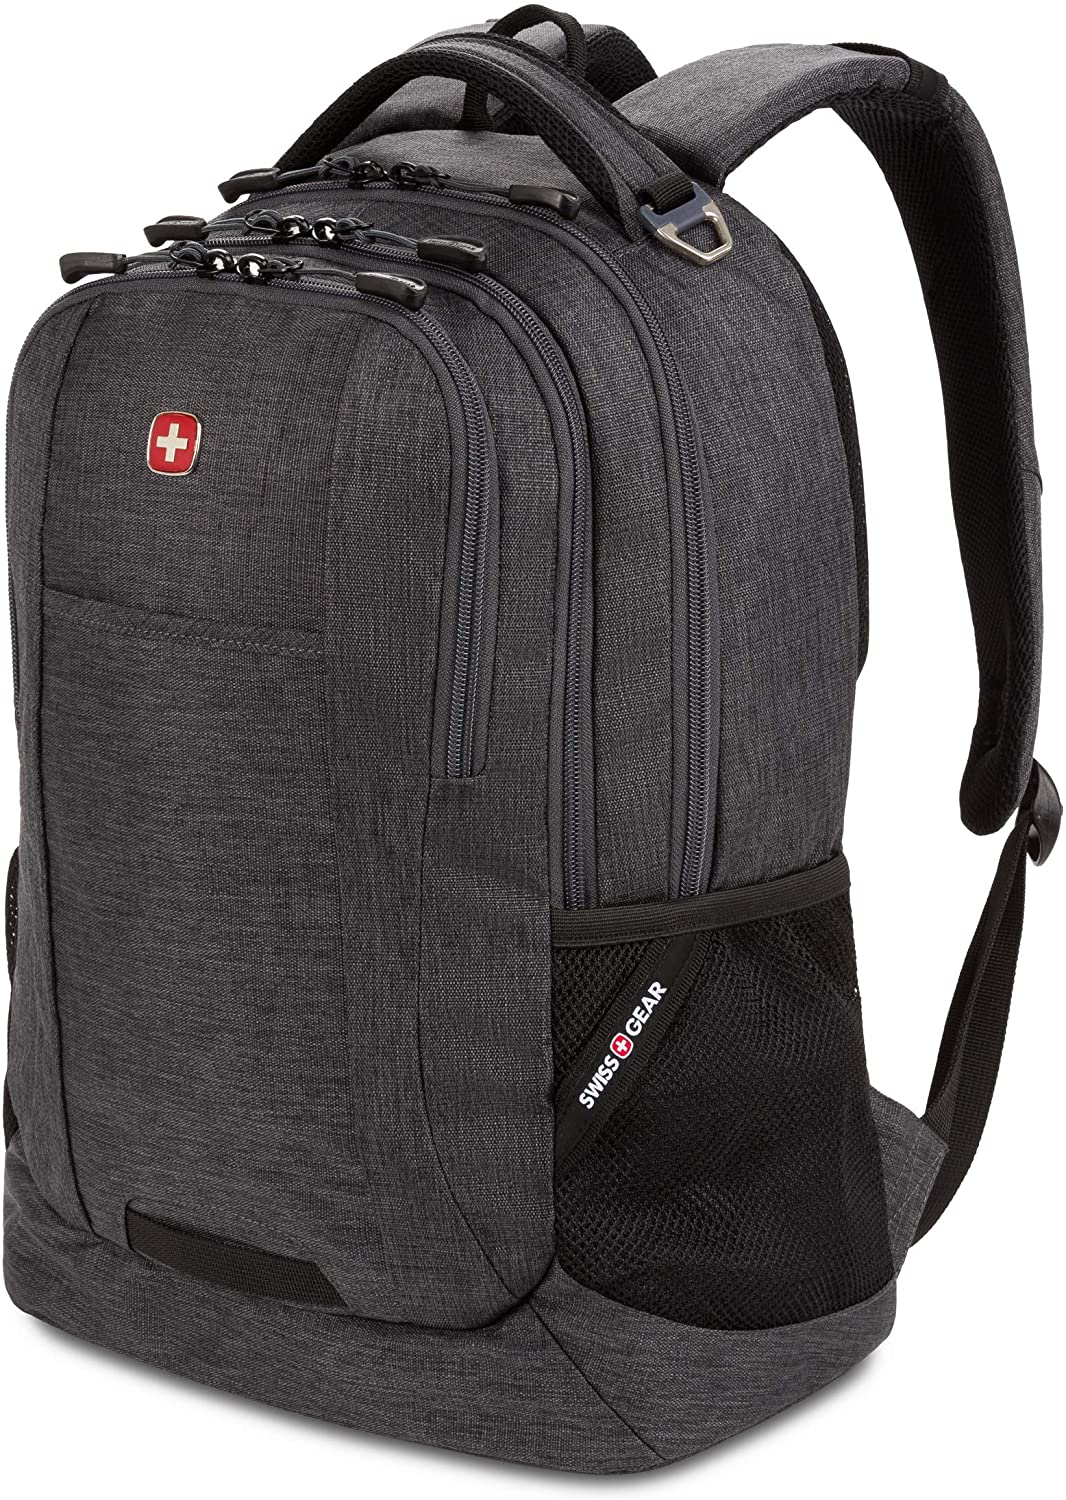 SWISSGEAR 5505 Laptop Backpack for Men and Women, Ideal for Commuting, Work, Travel, College, and School, Fits 15 Inch Laptop Notebook (Dark Grey)